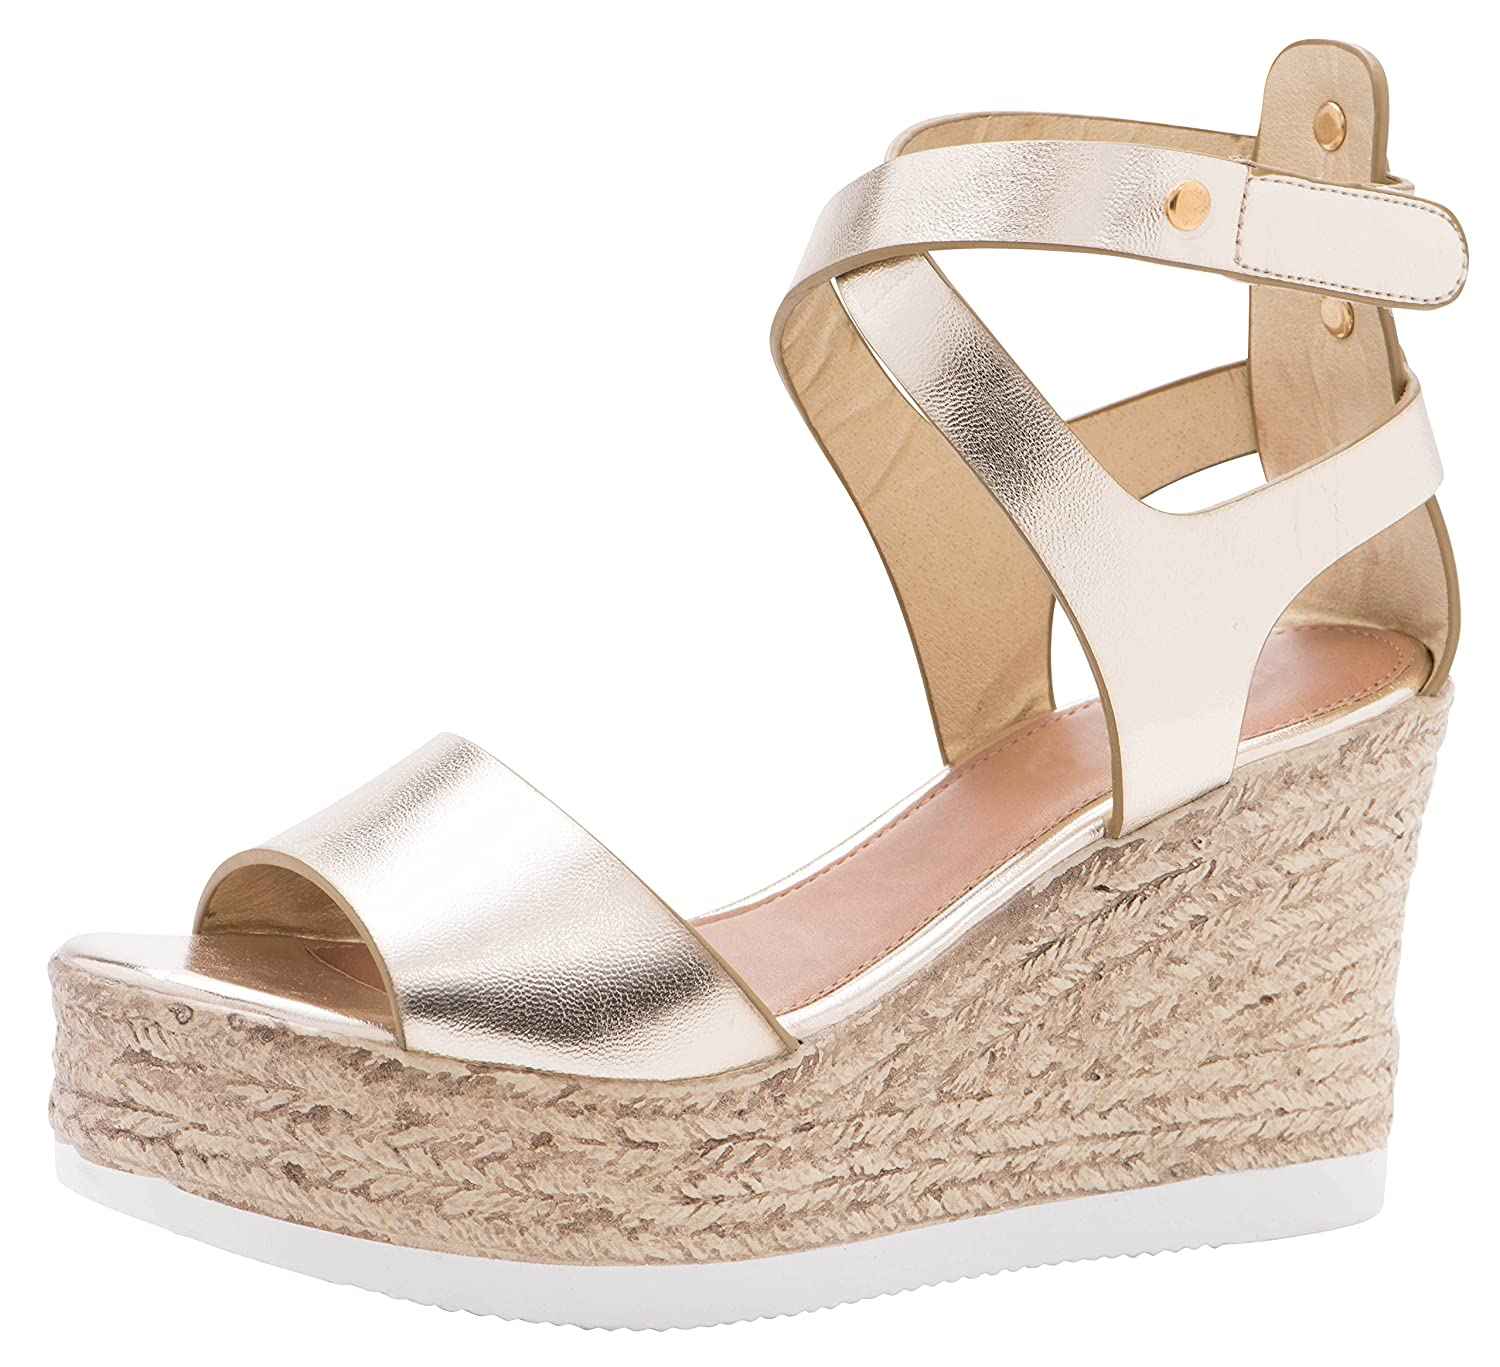 Champagne Pu Cambridge Select Women's Peep Toe Crisscross Ankle Strappy Espadrille Platform Wedge Sandal